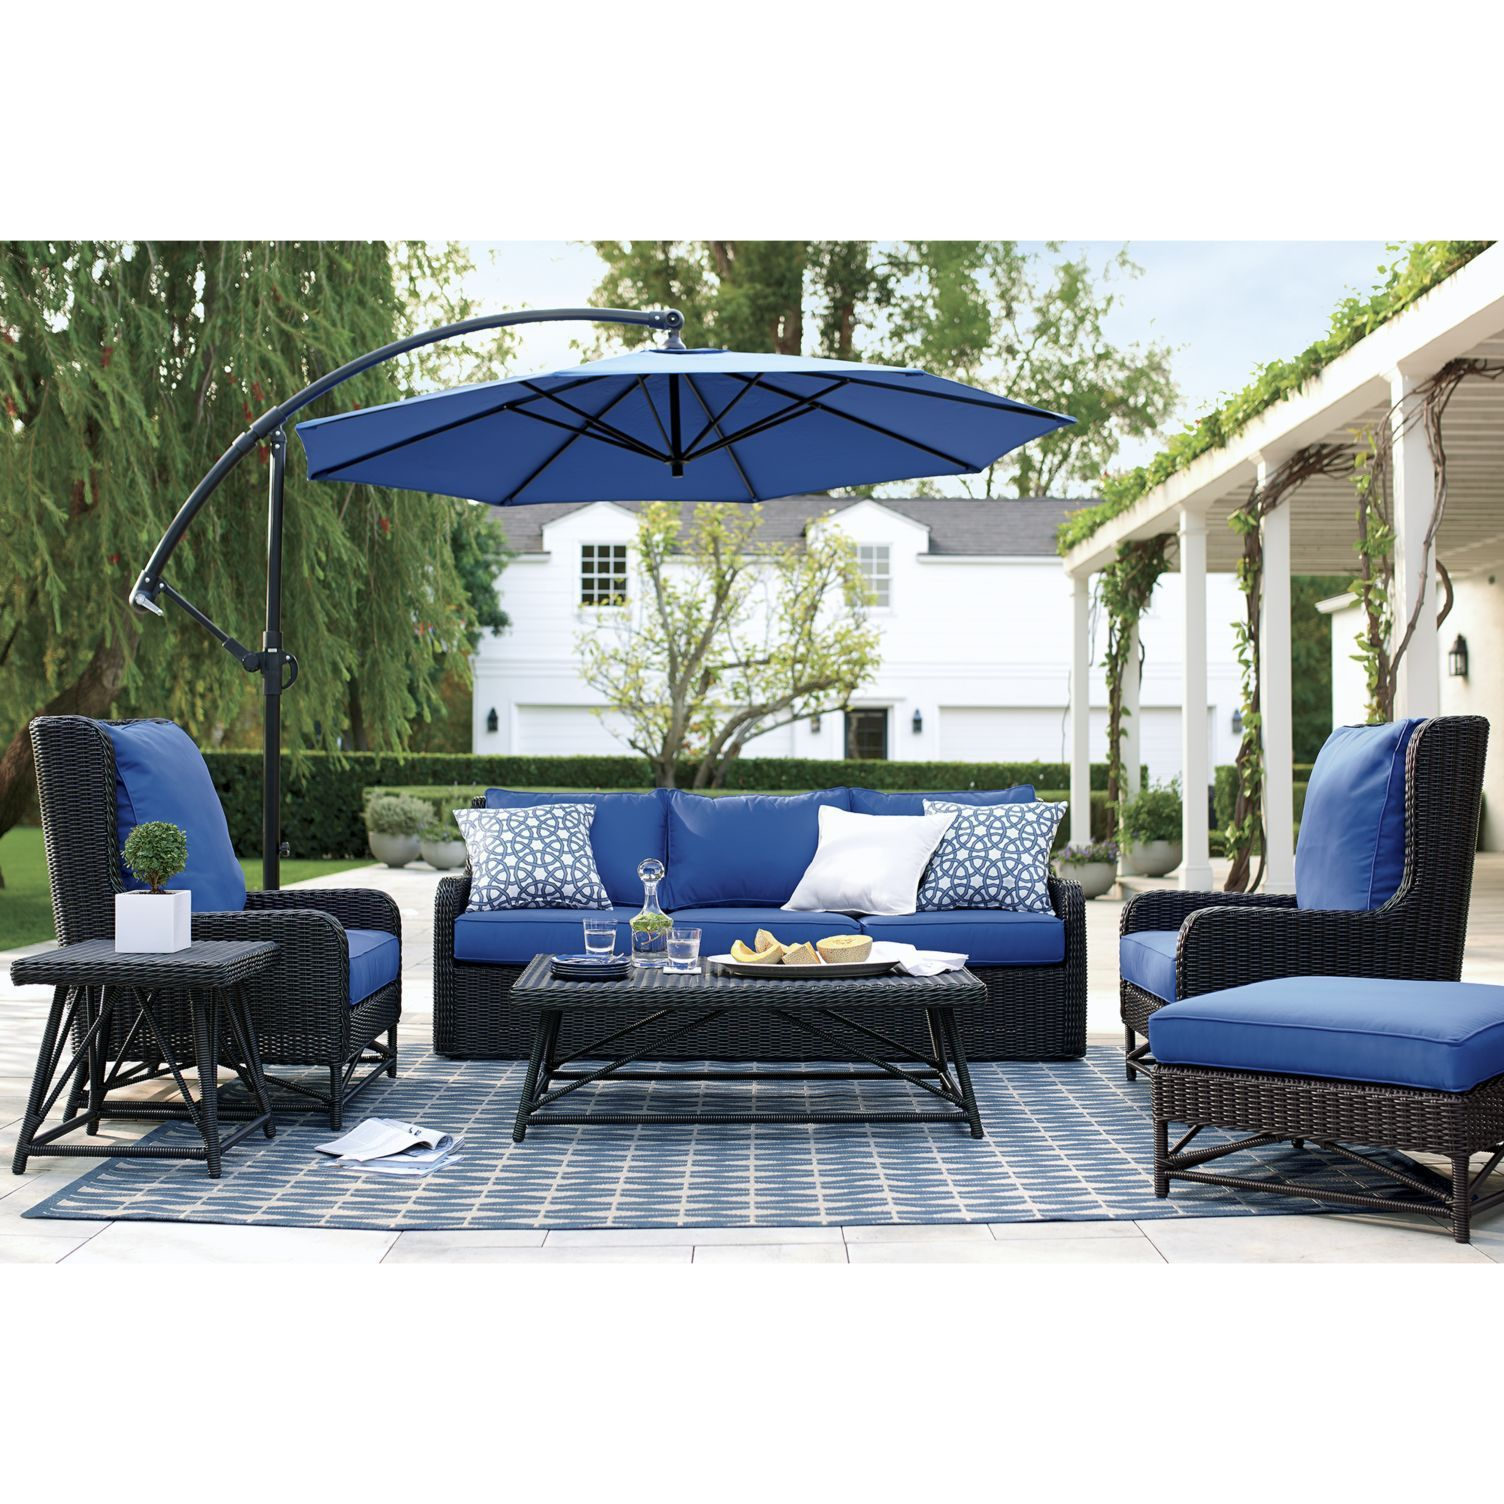 We Re Obsessed With This Outdoor Rug And It S Crazy Cheap Right Now Outdoor Rugs Patio Blue Patio Blue Patio Furniture